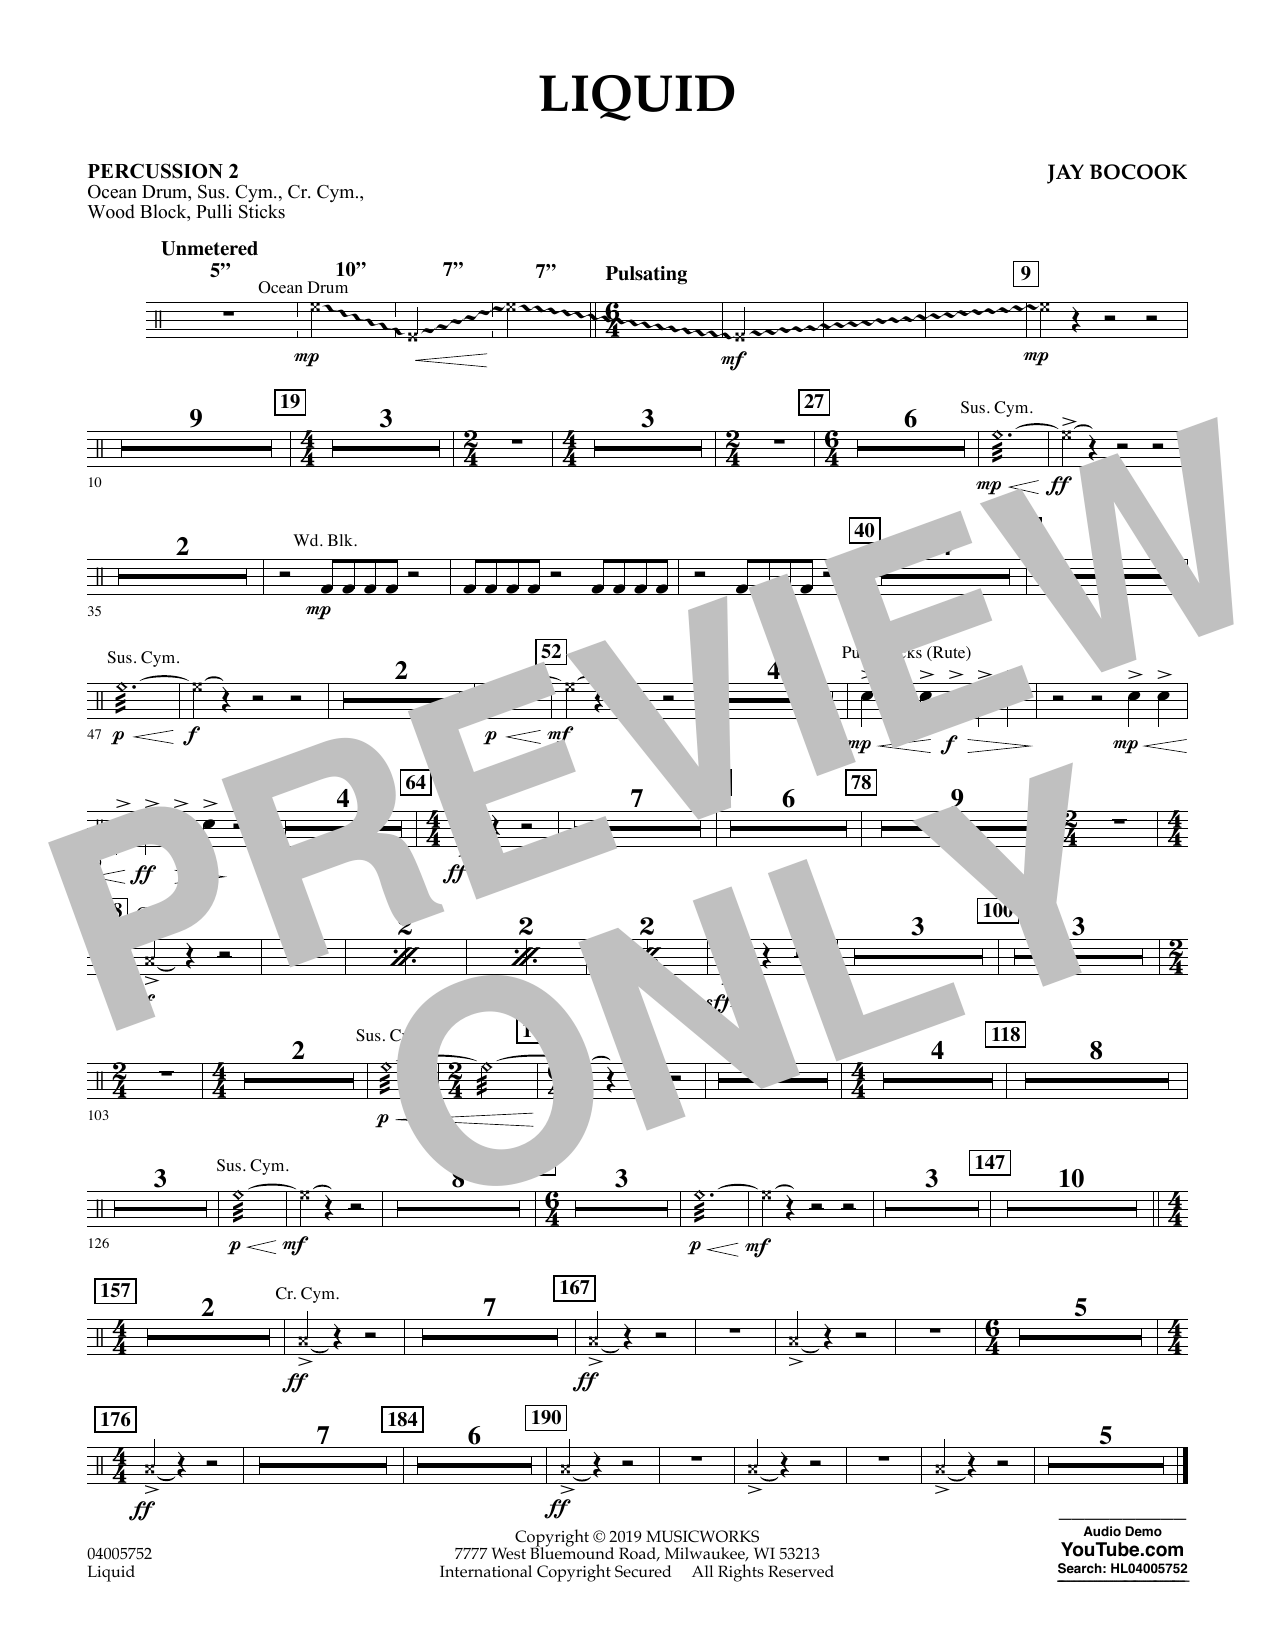 Jay Bocook Liquid - Percussion 2 sheet music preview music notes and score for Concert Band including 1 page(s)